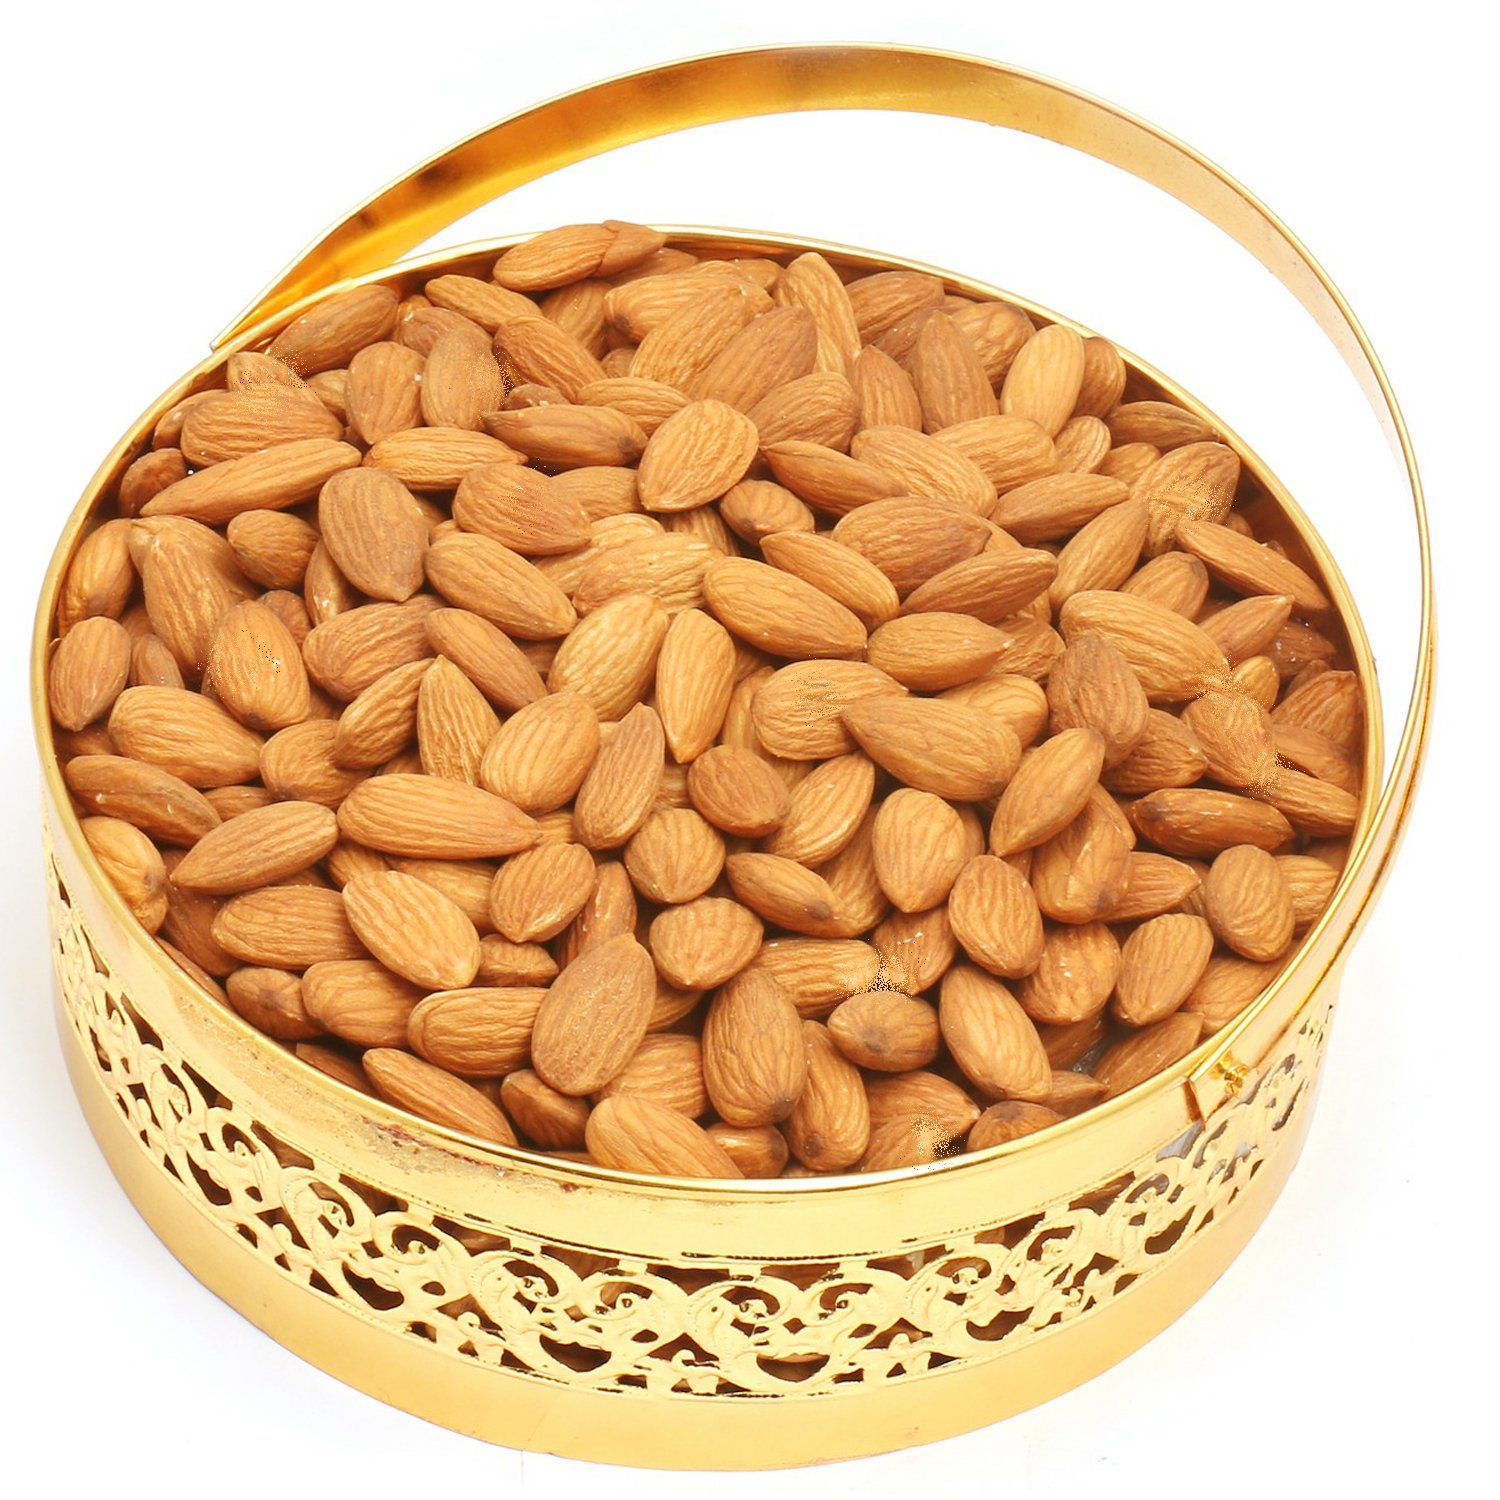 Round Golden Almonds Basket